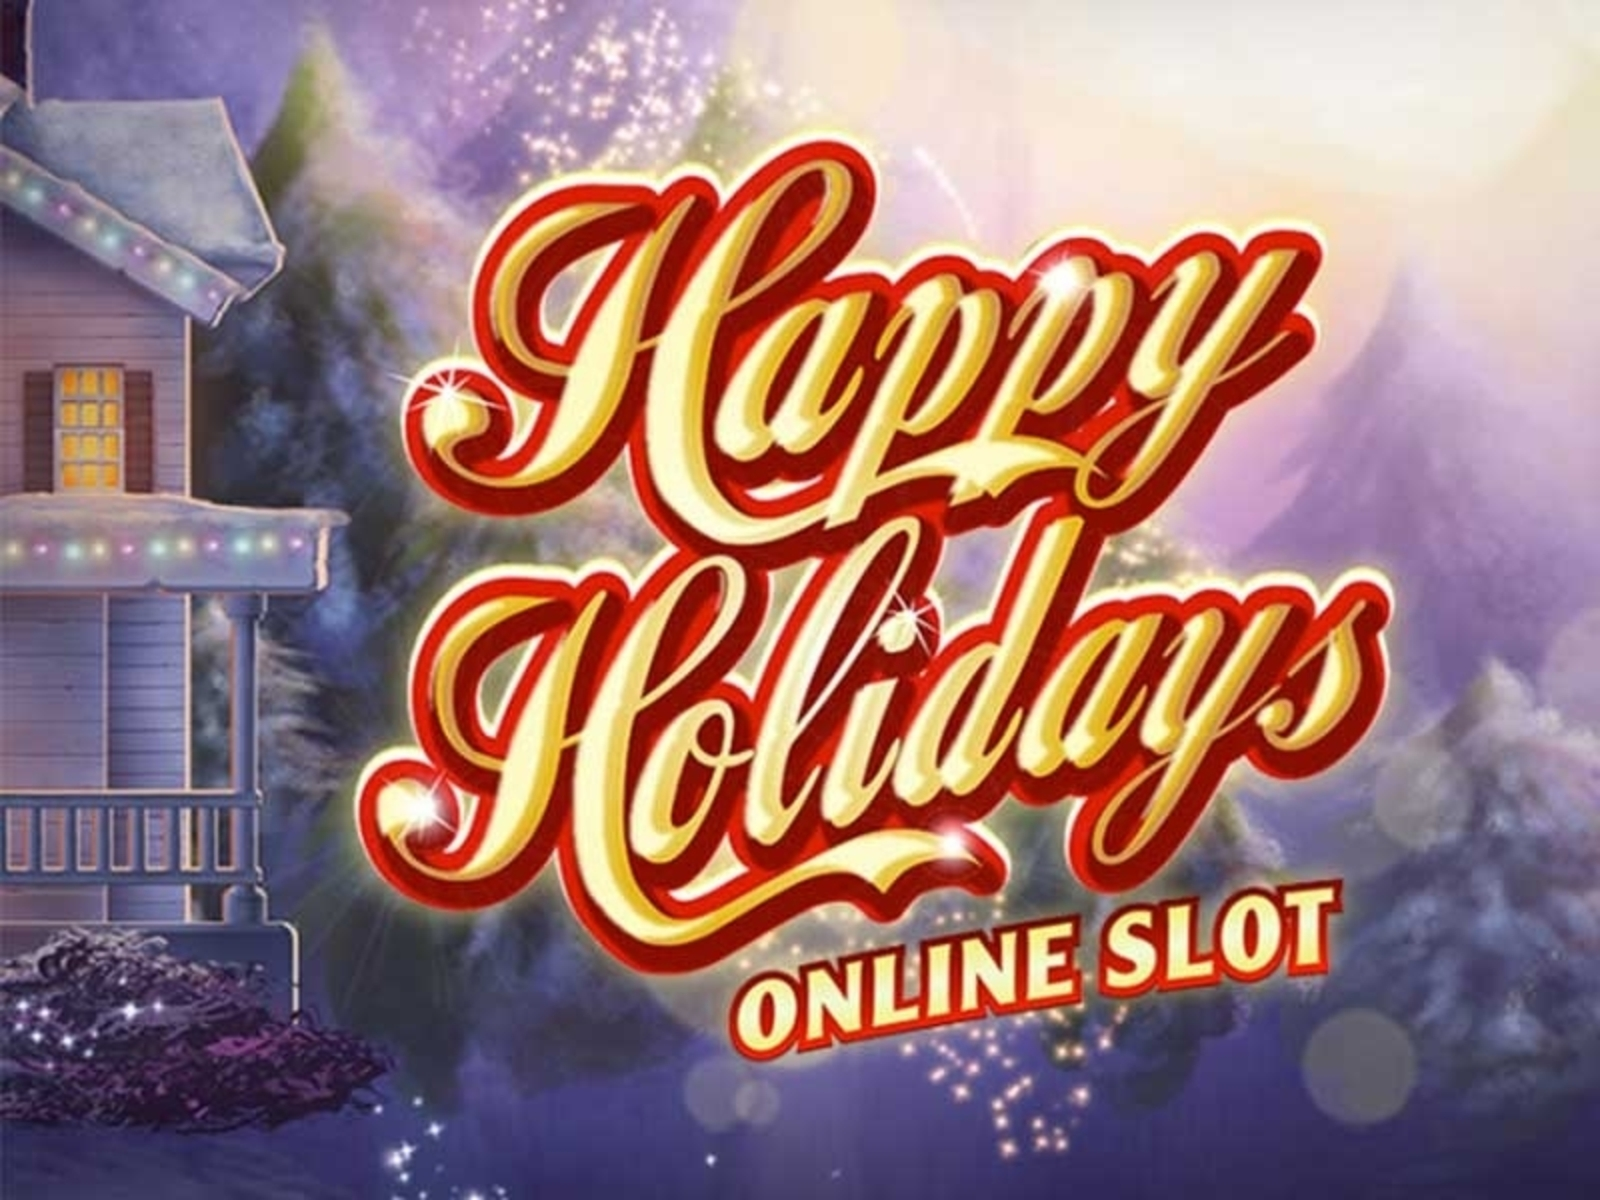 Se Happy Holidays Online Slot Demo Game, Microgaming